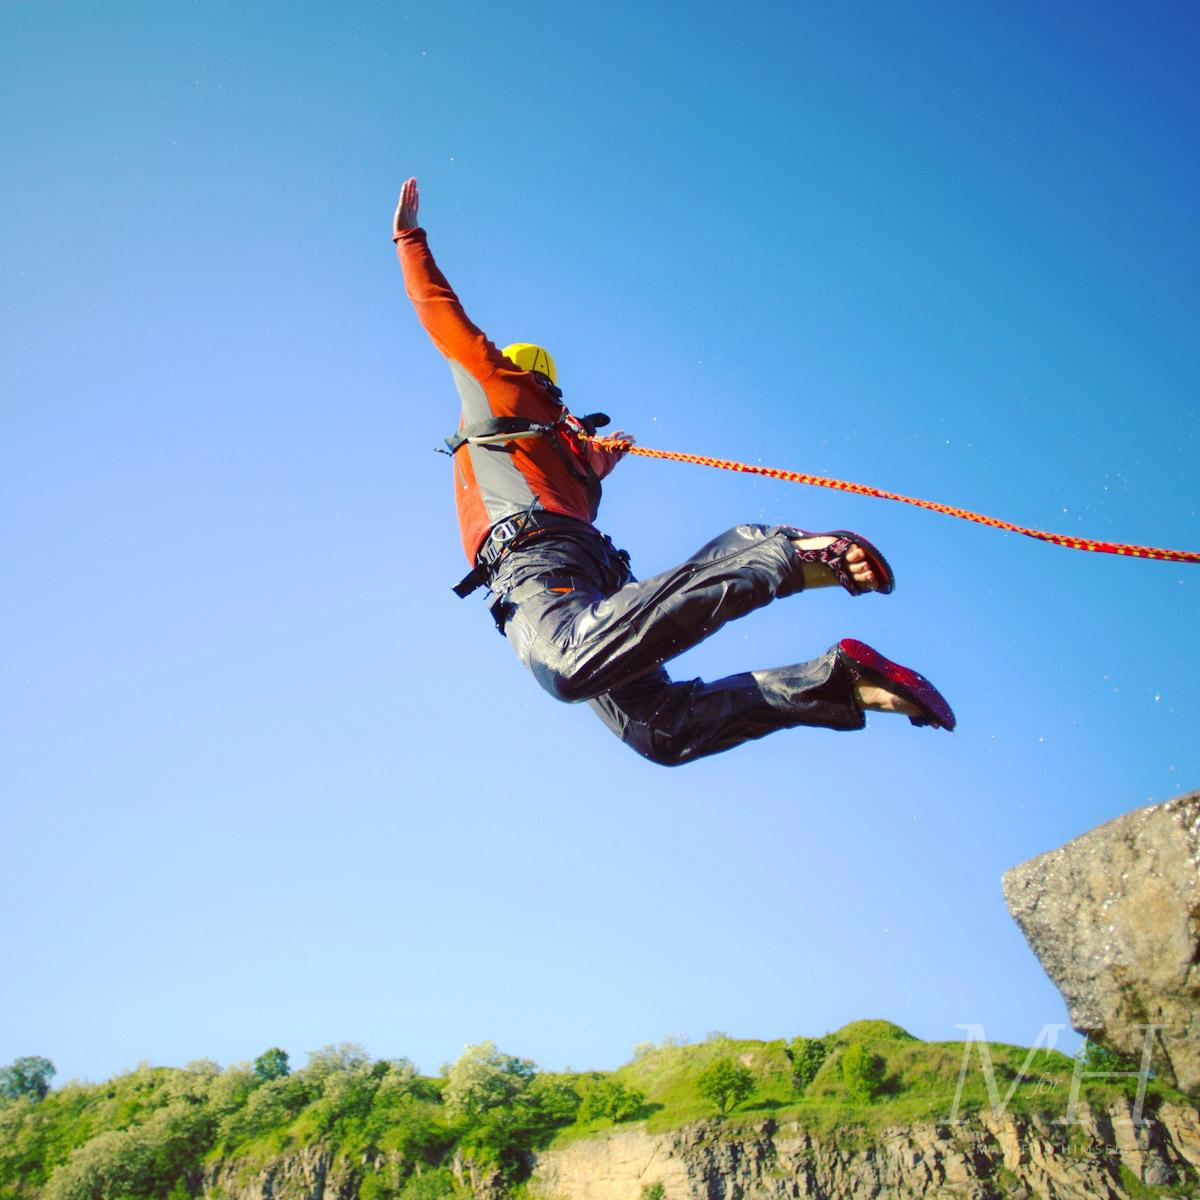 top-10-experiences-for-men-tinggly-bungee-man-for-himself